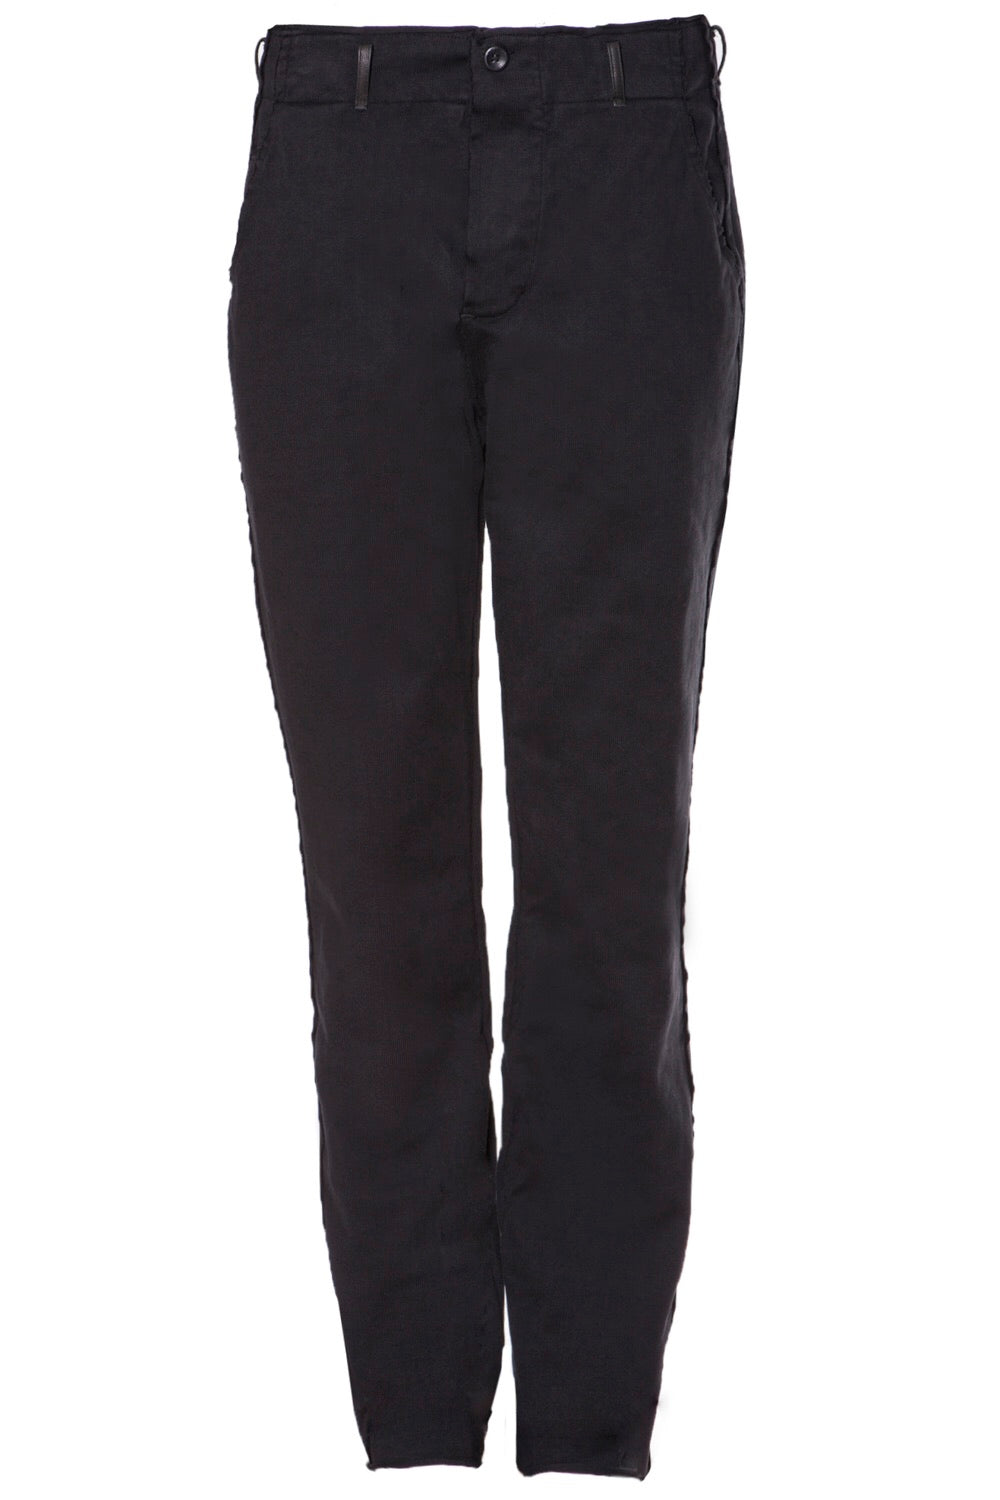 Hannes Roether Black Trouser